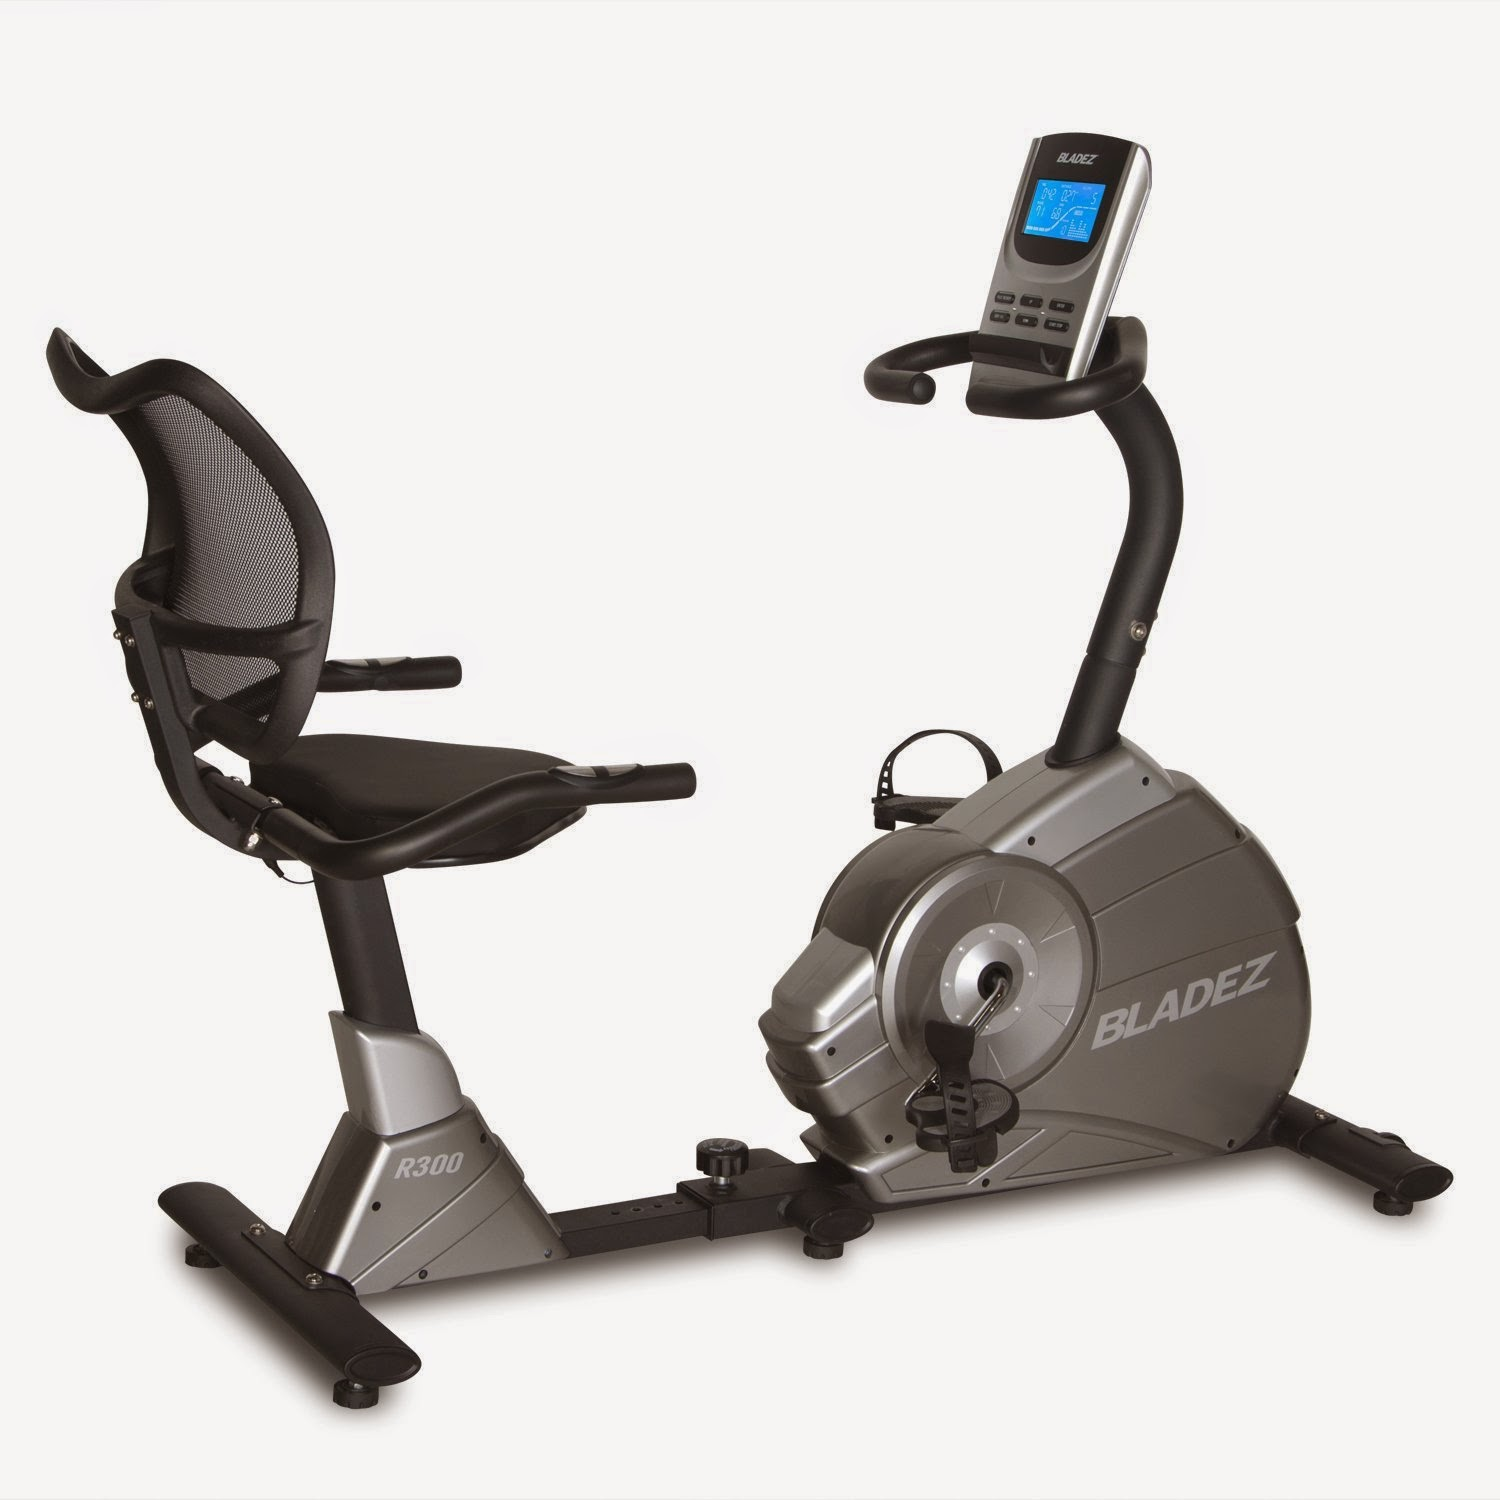 Bladez Fitness R300 Recumbent Bike, 23 workout programs, 16 magnetic resistance levels